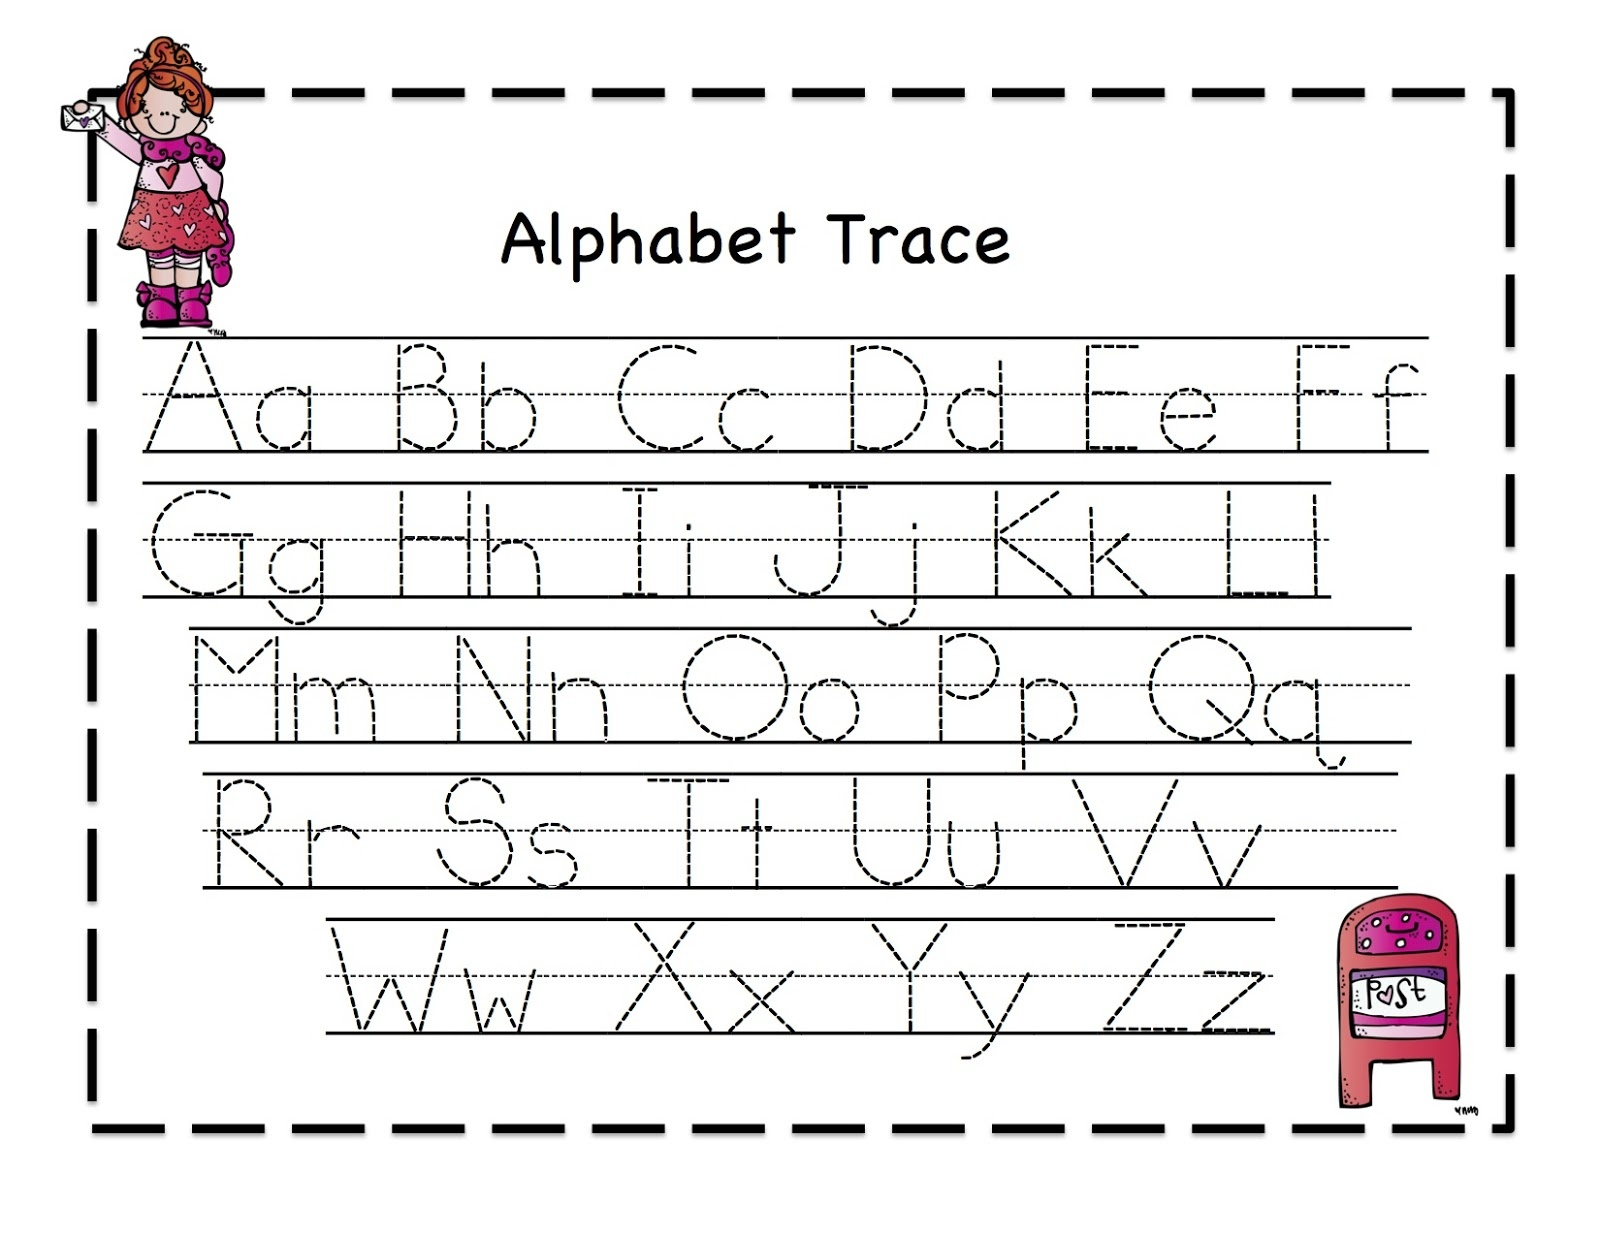 42 Educative Letter Tracing Worksheets | Kittybabylove - Free Printable Alphabet Tracing Worksheets For Kindergarten